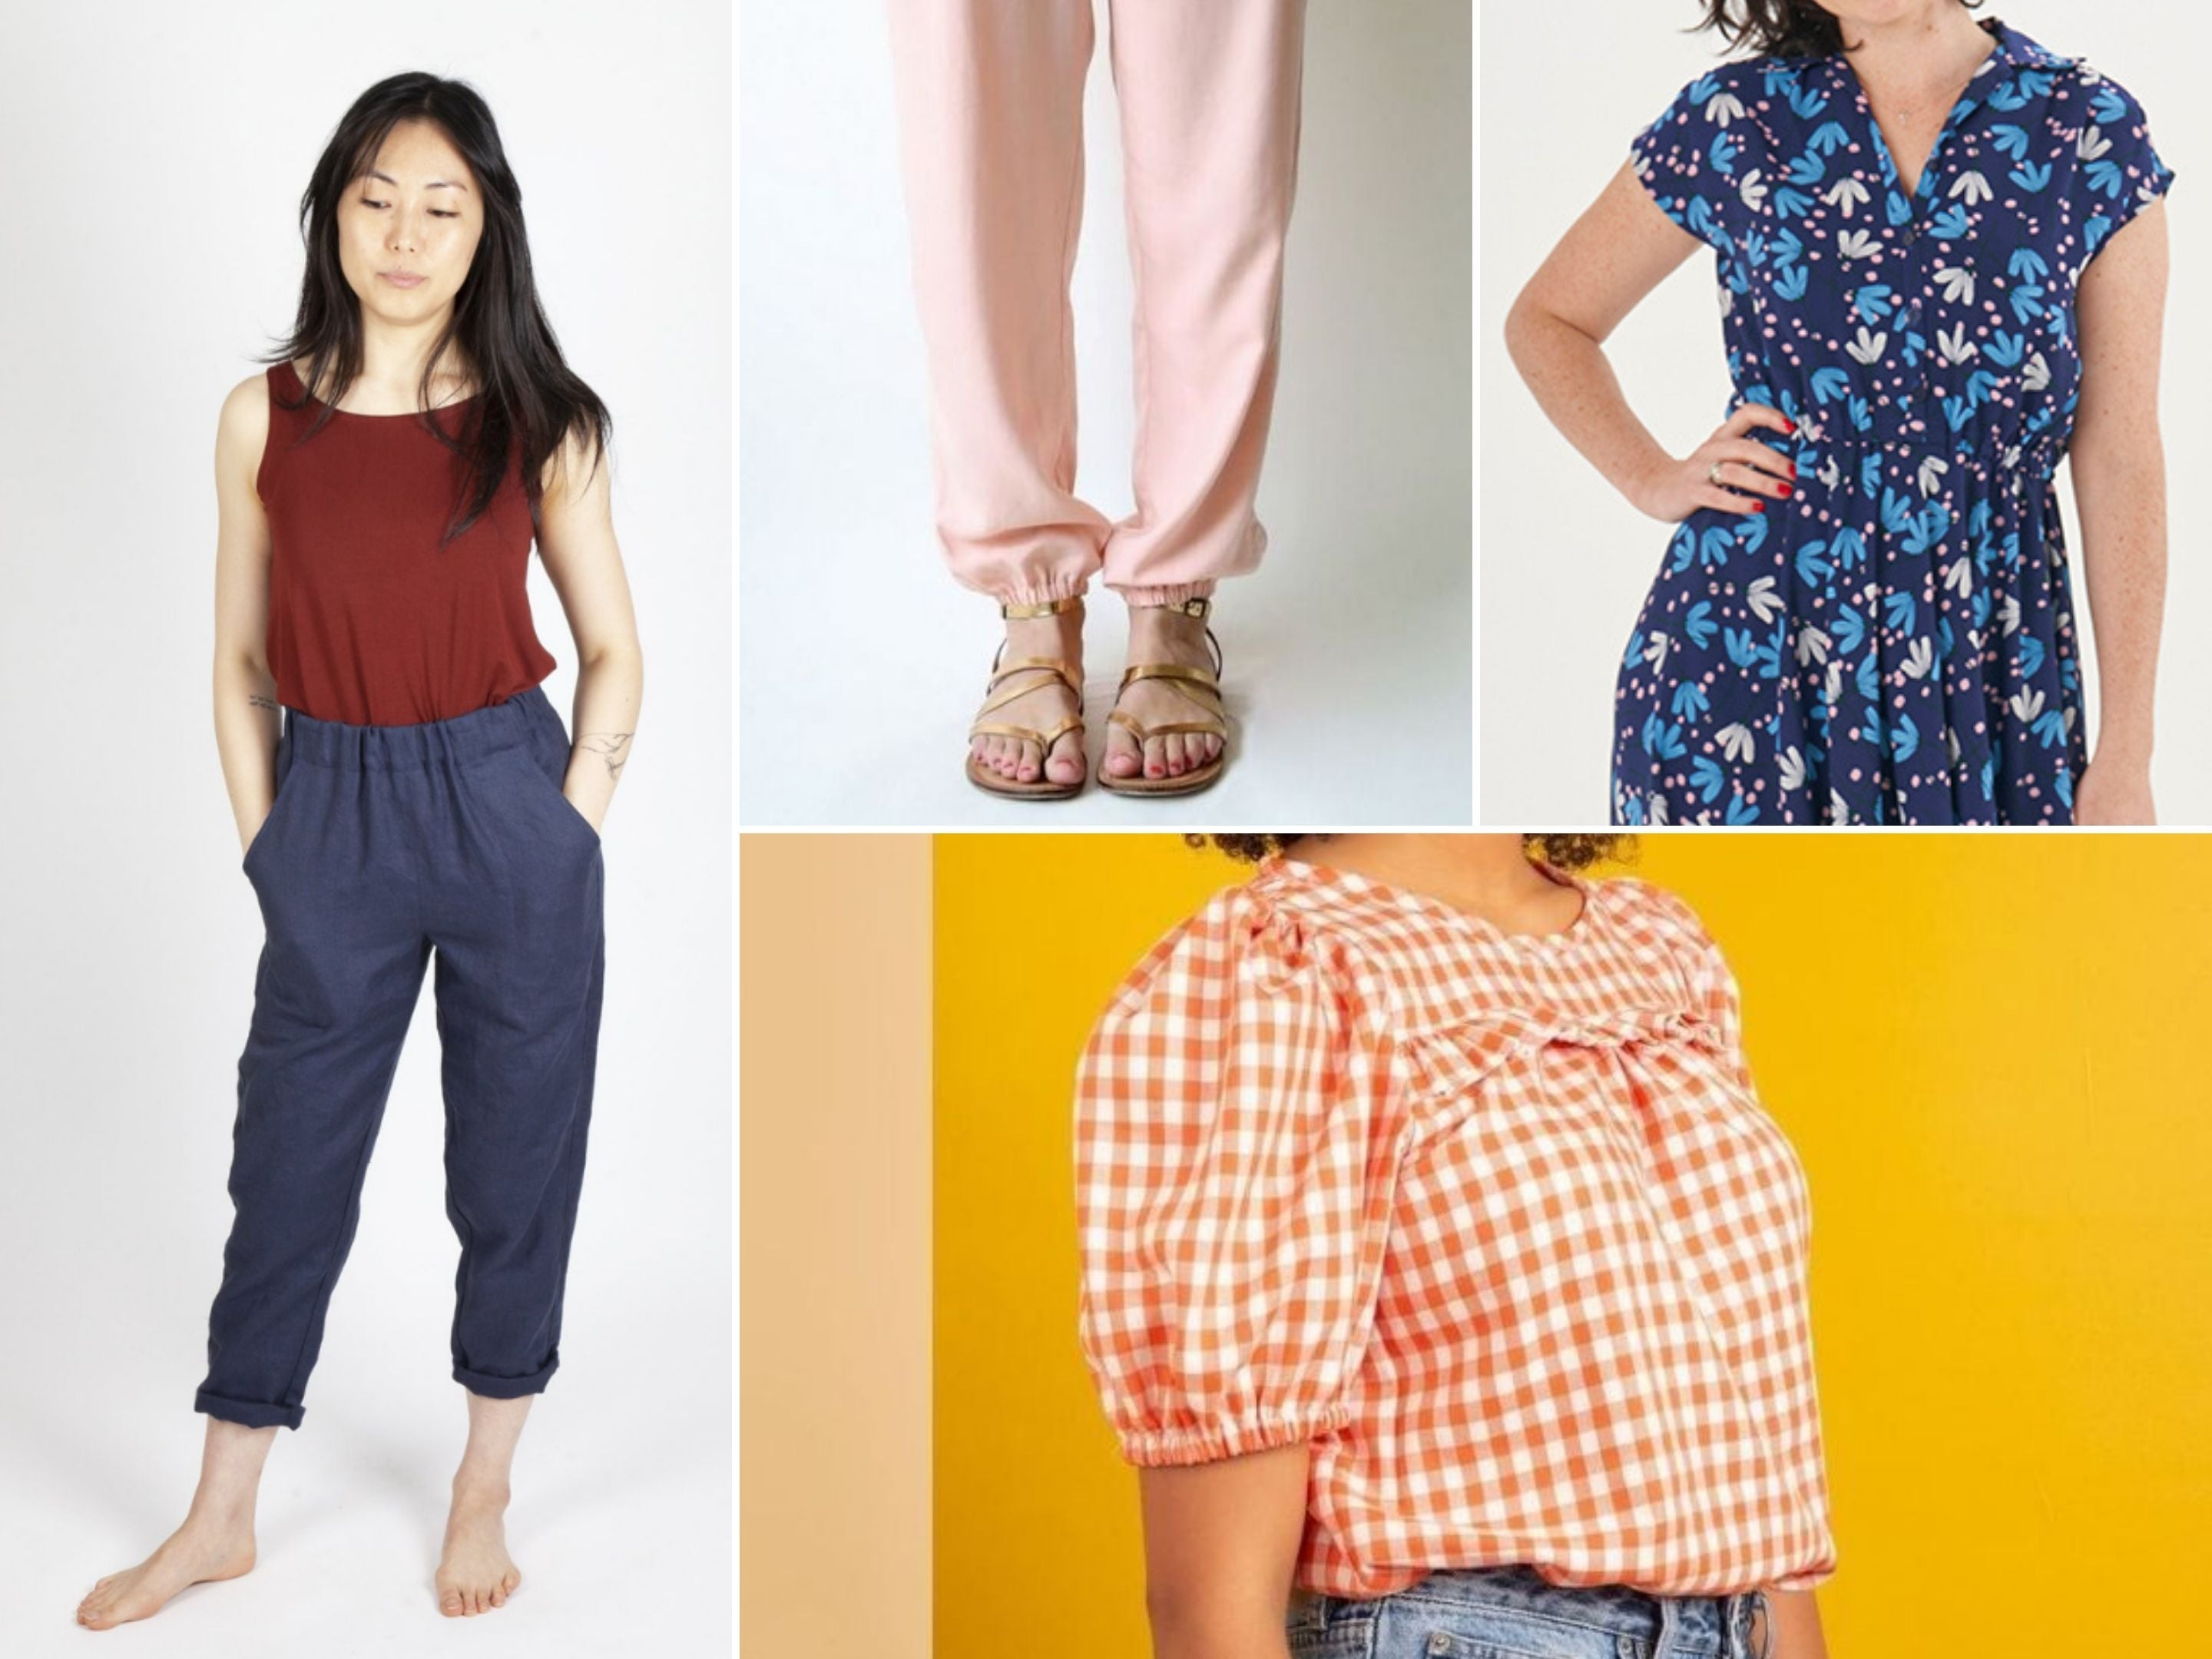 Various ways to use elastic in handmade garments—suggested patterns Sew House Seven Free Range Slacks, Made by Rae Luna Pants, Sew Over It Penny Dress, and Friday Pattern Co. Sagebrush Top